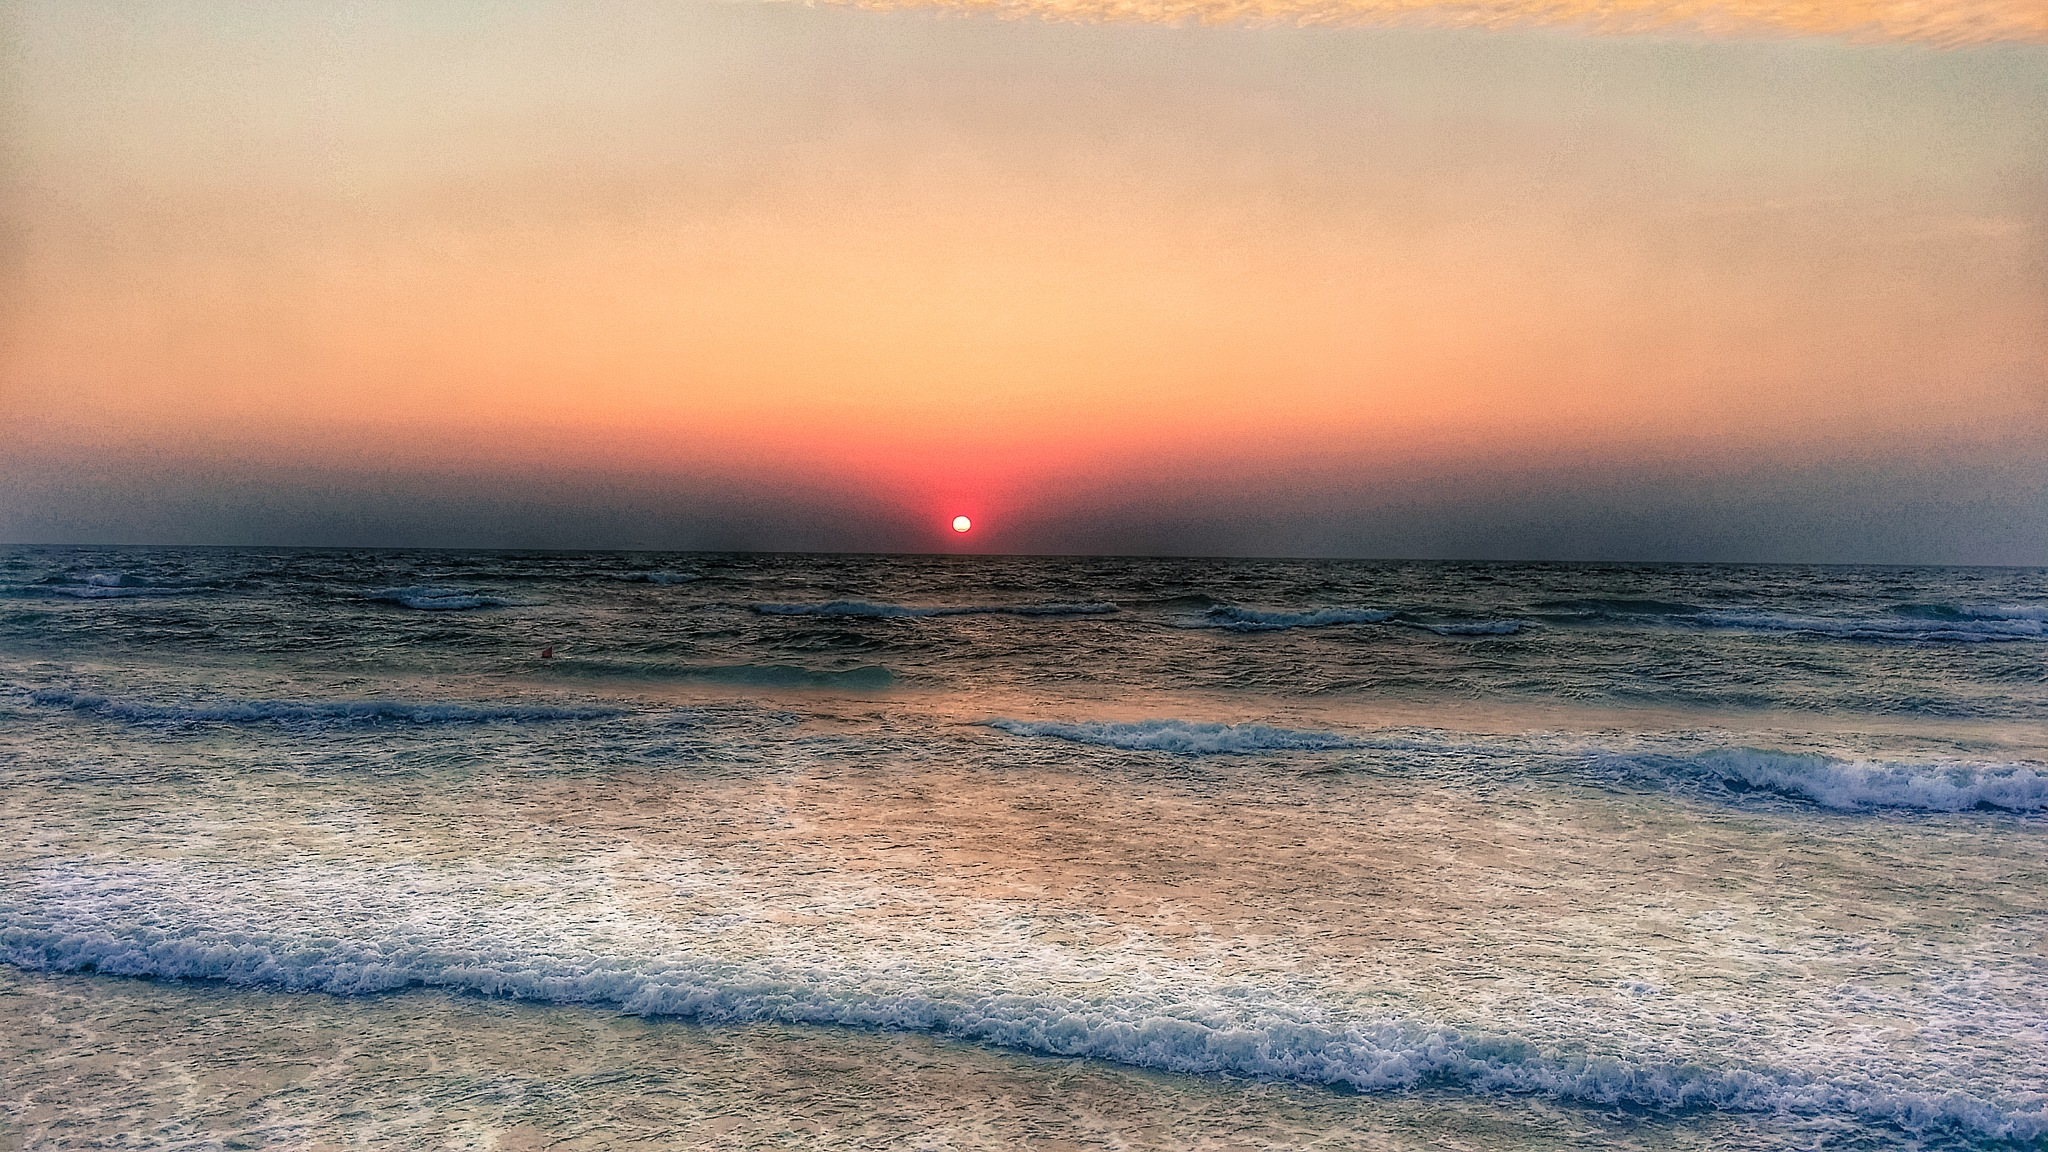 Sunrise by the sea by Costin0509